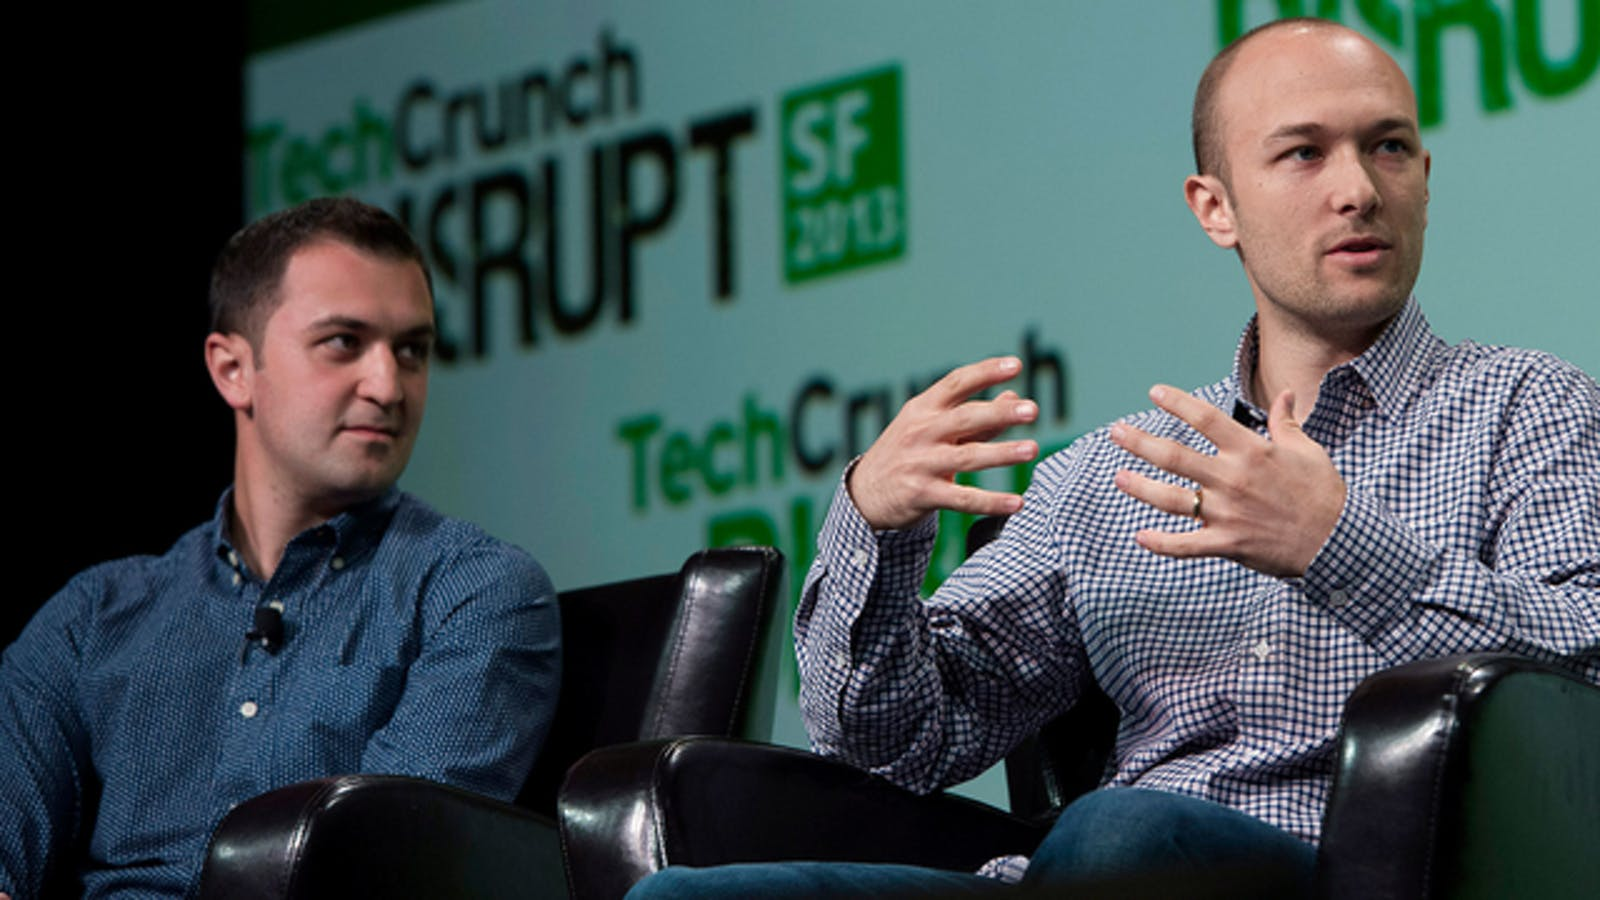 Lyft founders John Zimmer and Logan Green. Photo by Bloomberg.